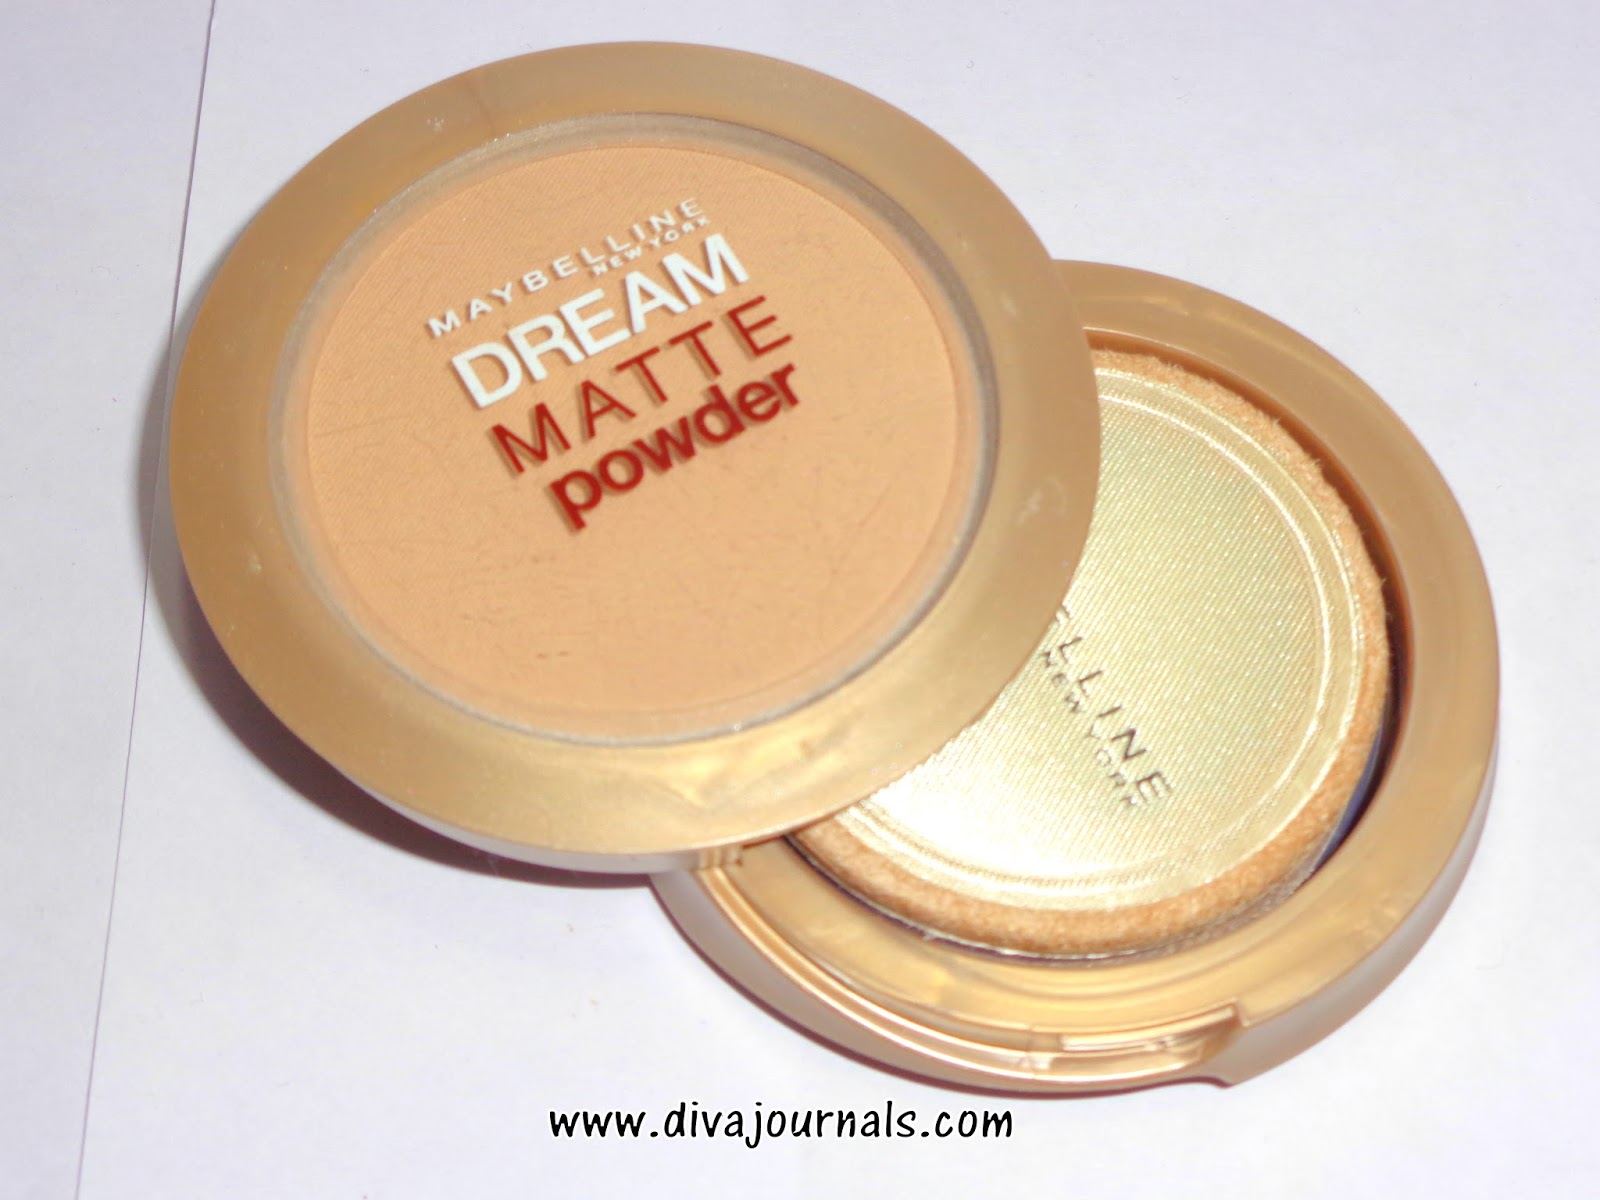 Best Compact Powders For Oily/Acne Prone Skin - Diva Journals